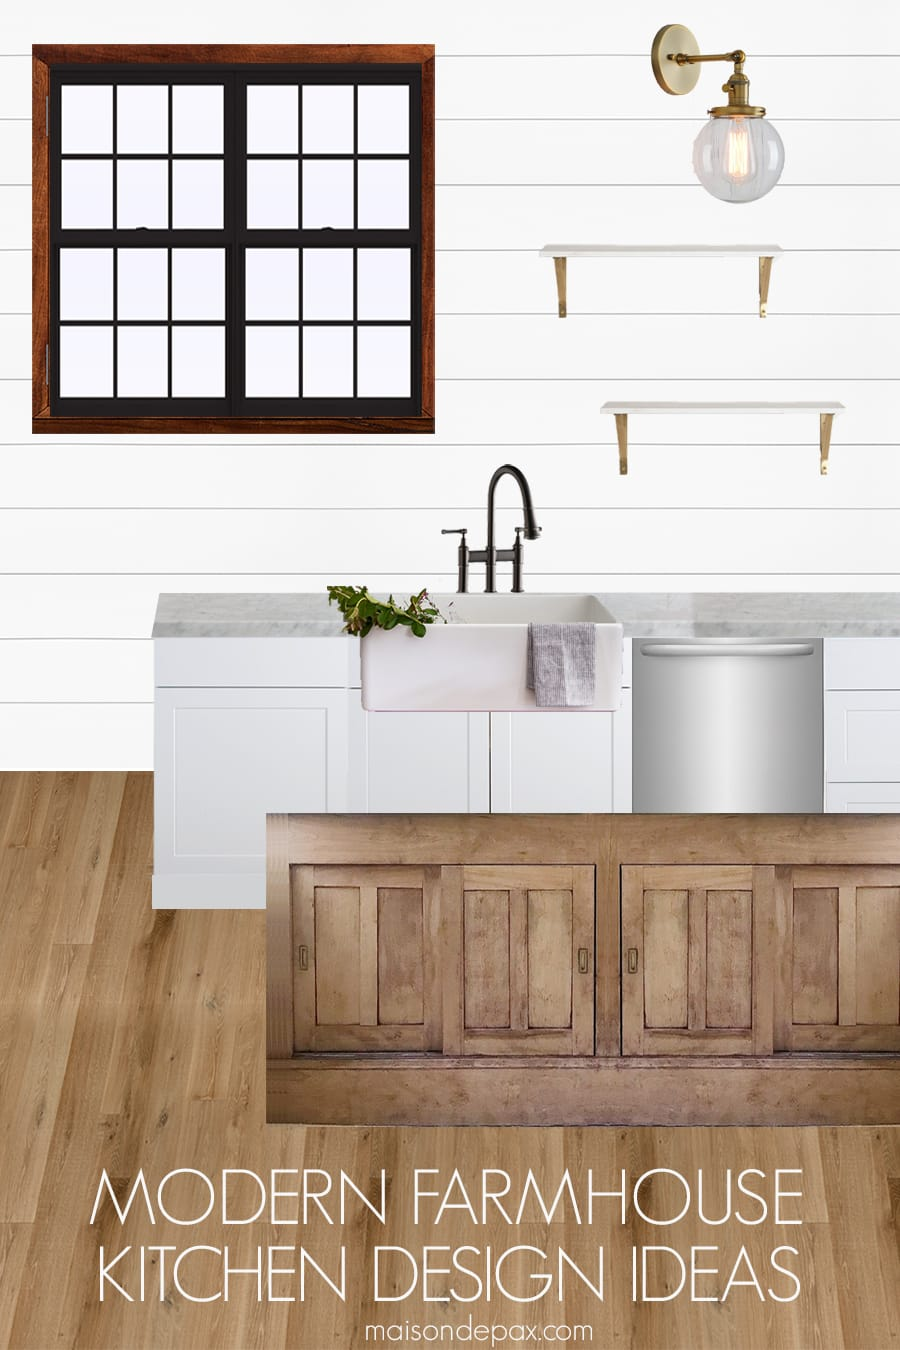 Modern Farmhouse Kitchen Design Ideas: Get 8 tips for a gorgeous modern farmhouse look. Plus see before pictures and plans for a rustic modern kitchen makeover. #modernfarmhouse #farmhousekitchen #kitchendesign #kitchen #modernfarmhousekitchen #rusticmodern